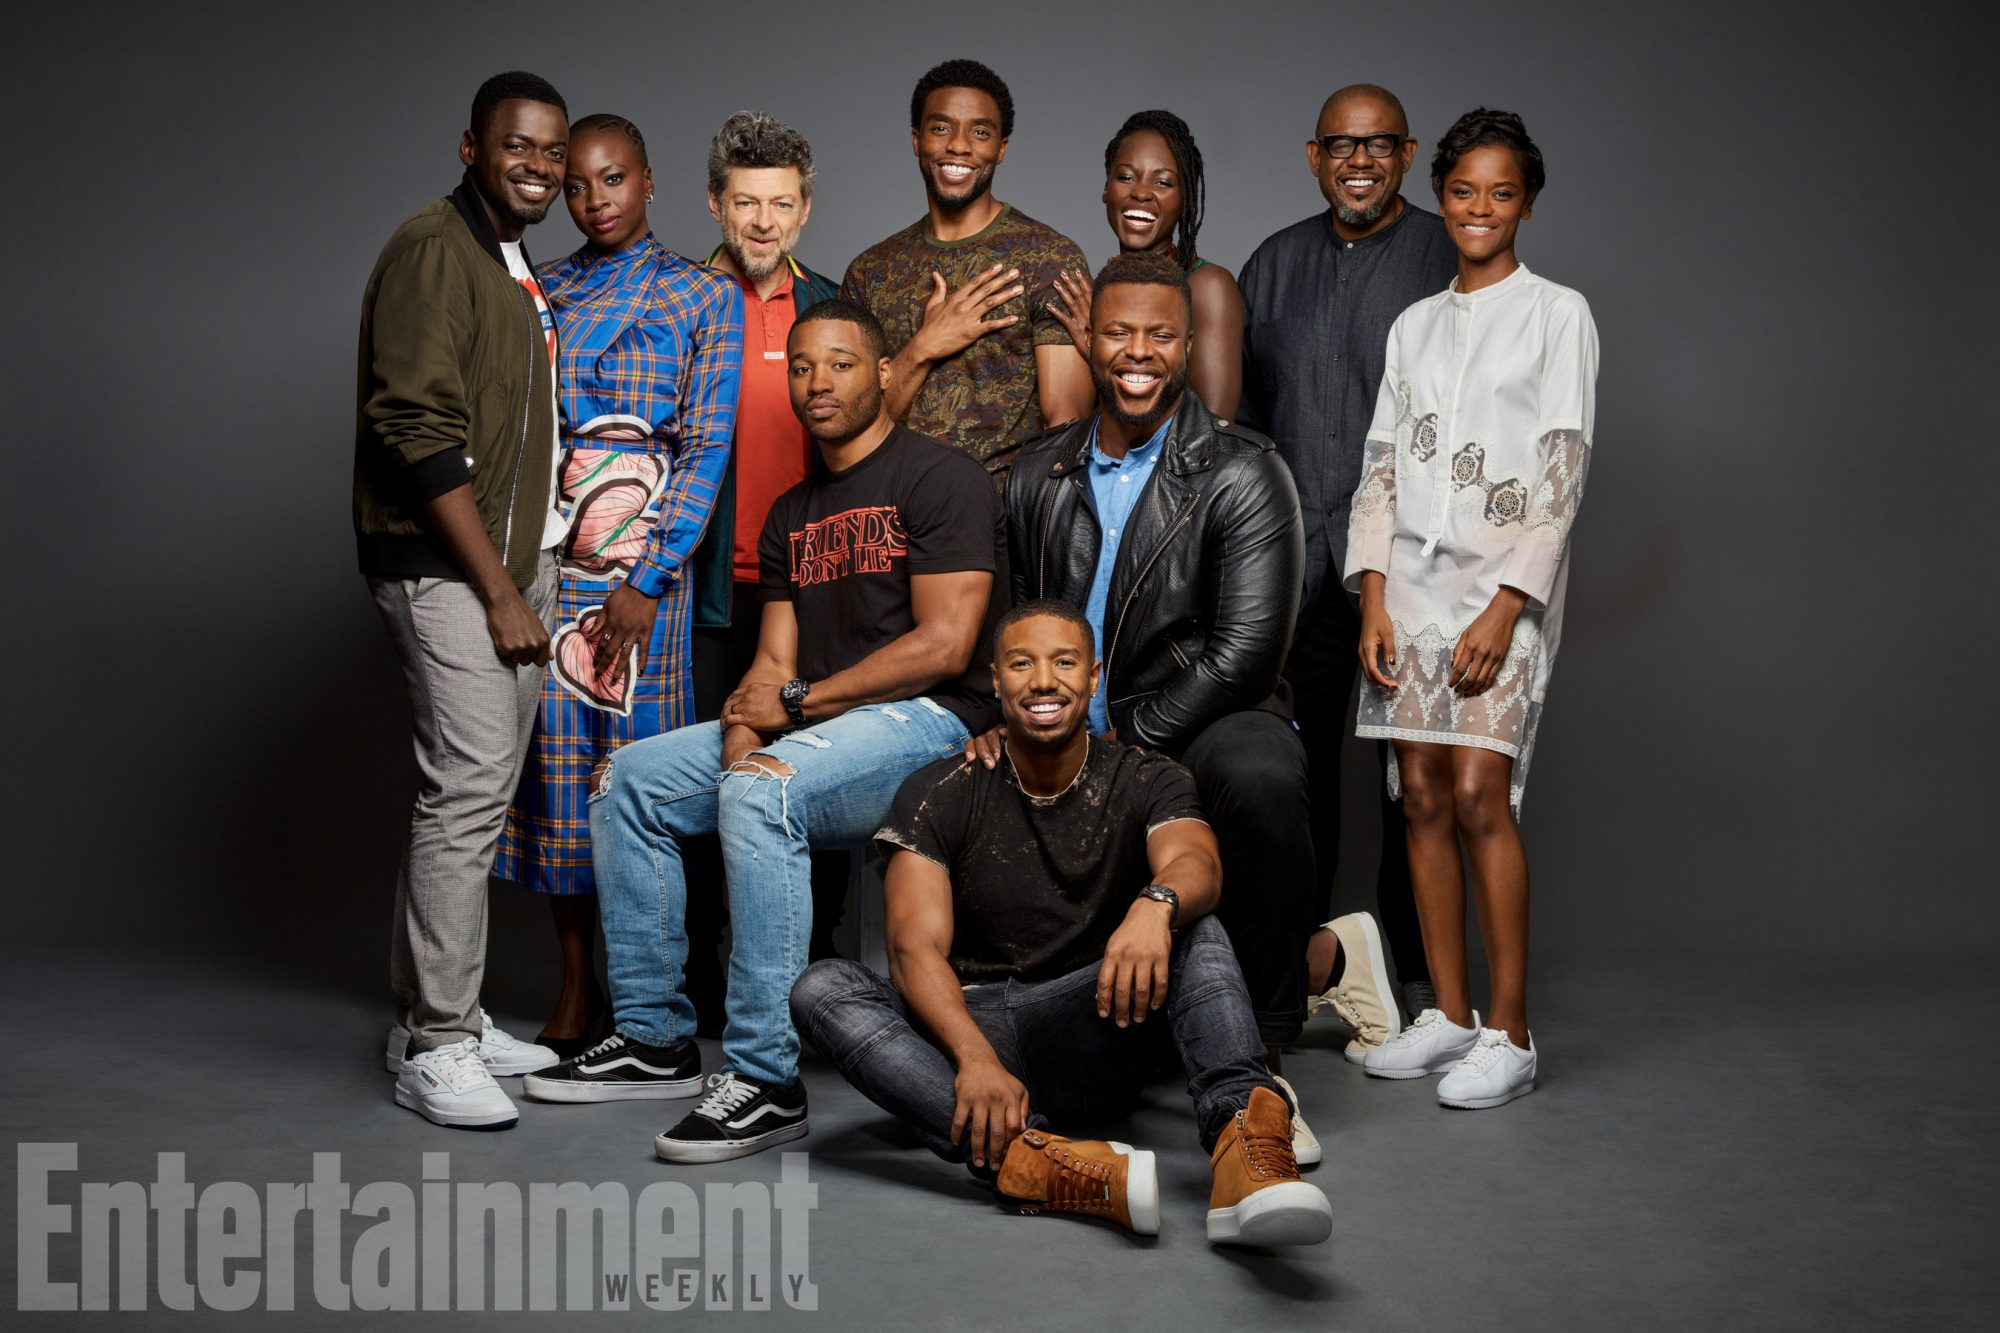 Team Black Panther: Daniel Kaluuya, Danai Gurira, Andy Serkis, Chadwick Boseman, Lupita Nyong'o, Forest Whitaker, Letitia Wright, Winston Duke, Michael B. Jordan, and director Ryan Coogler